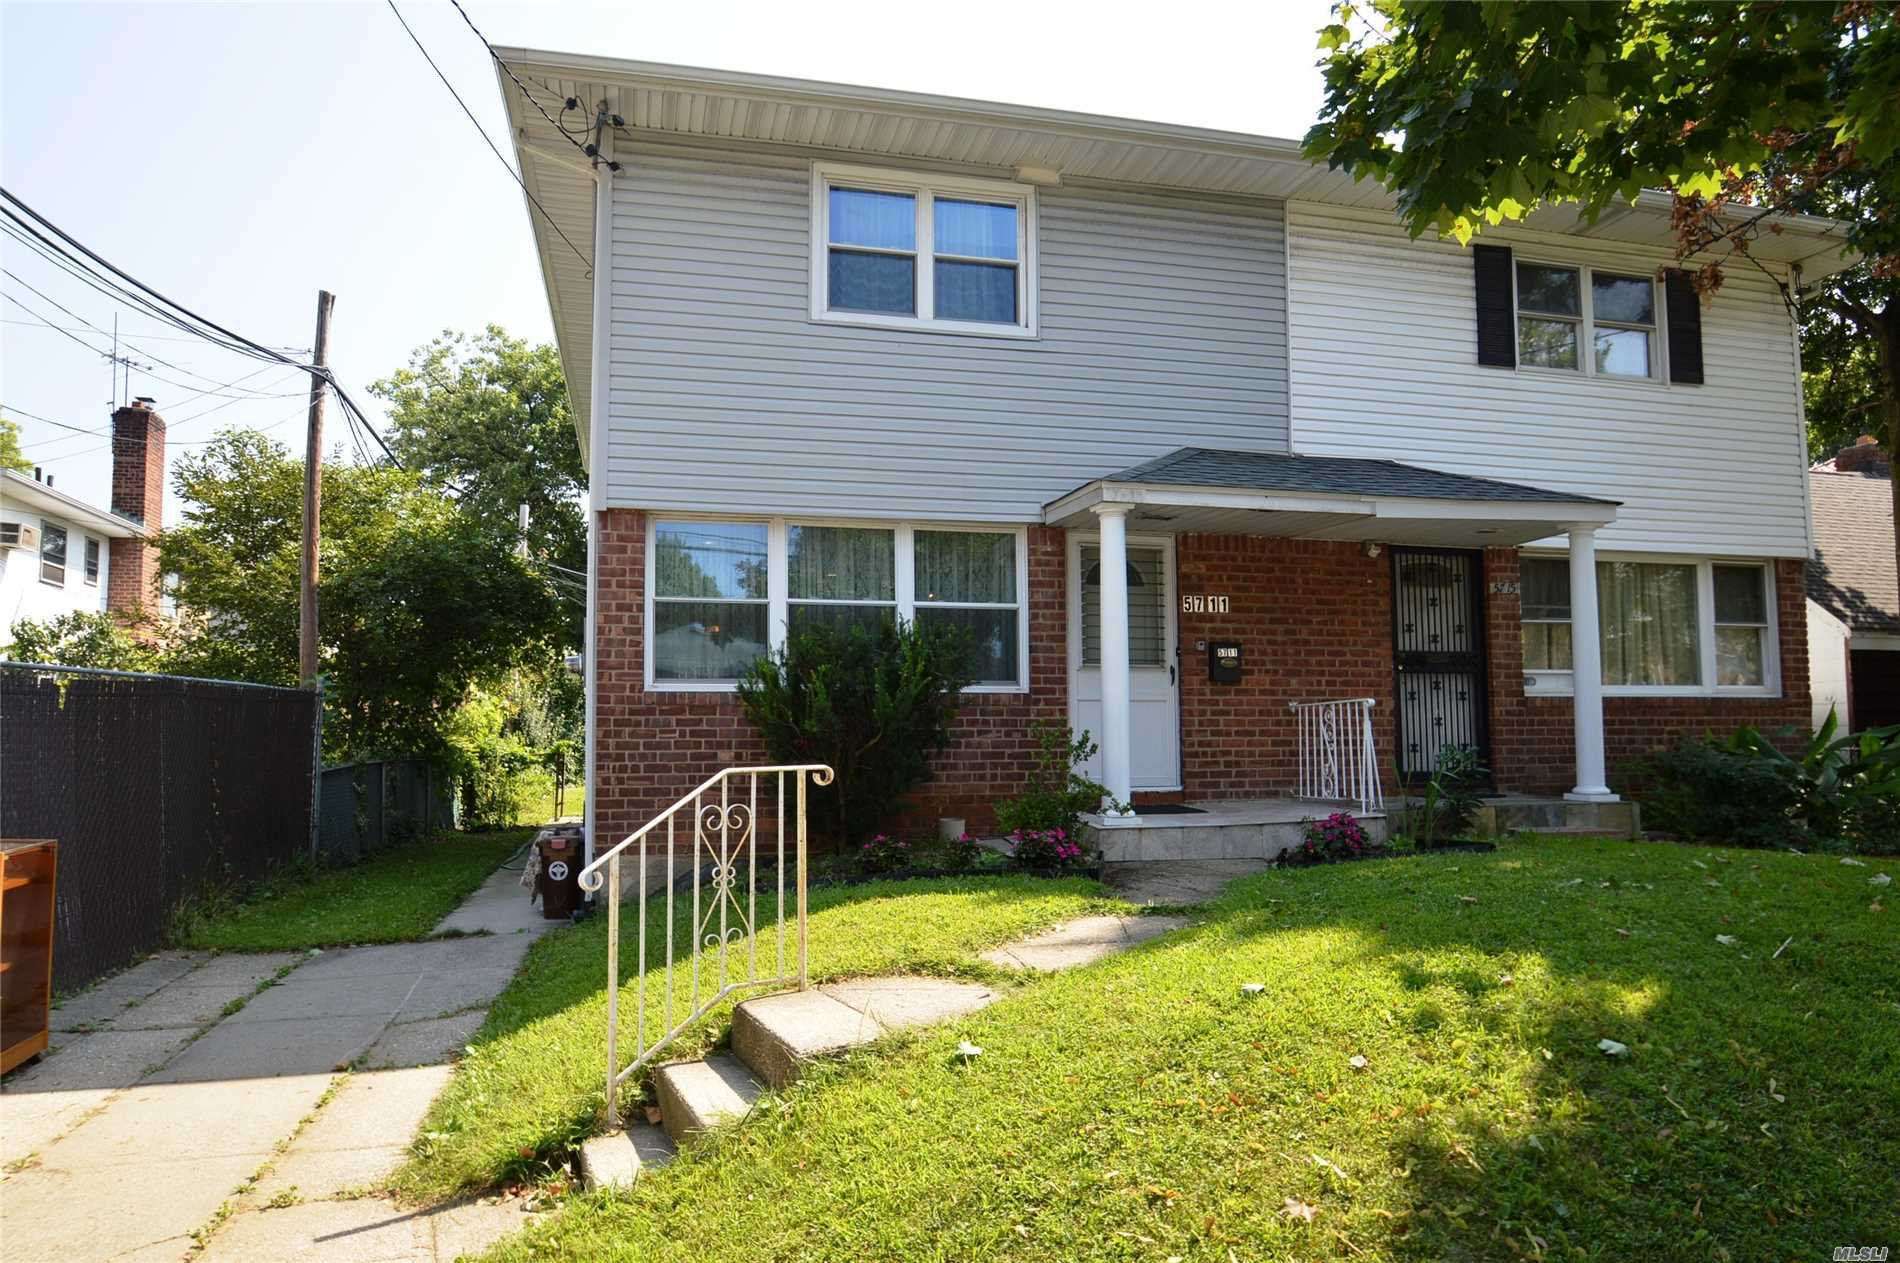 Absolutely Beautiful Sun Filled 3 Bedroom, 1.5 Bath Updated Colonial With Hardwood Floors Throughout. Near Express Bus To City, Lirr, Major Highways & Shopping. School District #26, Ps 221 & Ms 67. Spacious Living Rm, Formal Dining Rm, Gorgeous Eat-In-Kitchen With Granite Counter Tops & Top Of The Line Appliances. Powder Rm On First Floor. 3 Over Sized Bedrooms And Full Marble Bathroom On Second Floor. Full Finished Basement With Large Rm, Laundry Rm & Bar. Attic. Lovely Backyard.